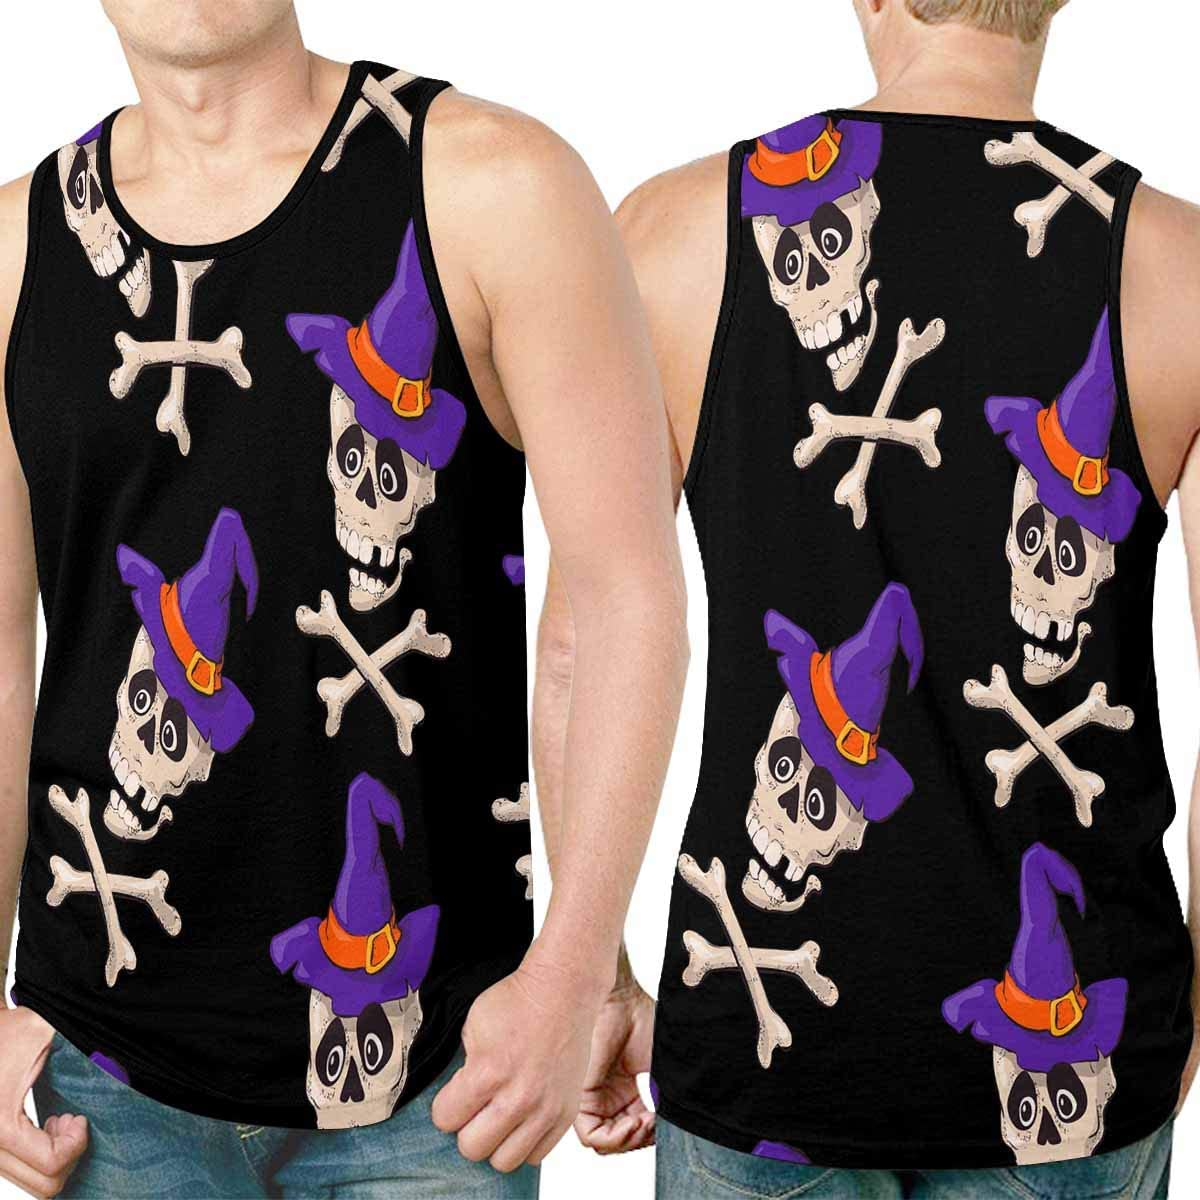 Cool Design Tank Tops T-Shirts Printed for Mens